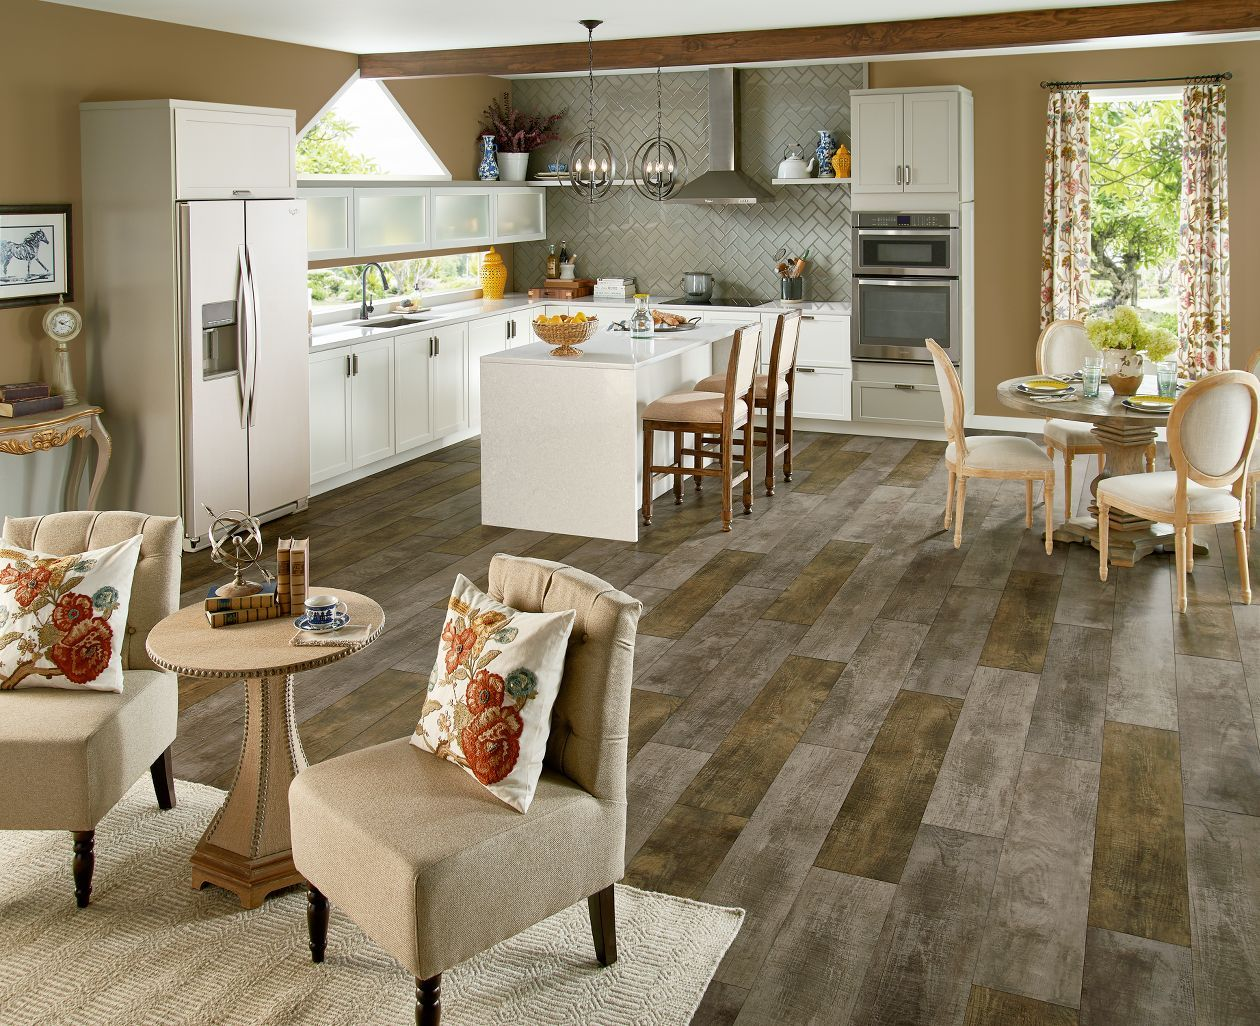 Vinyl is taking the flooring world by storm in 2018! Find